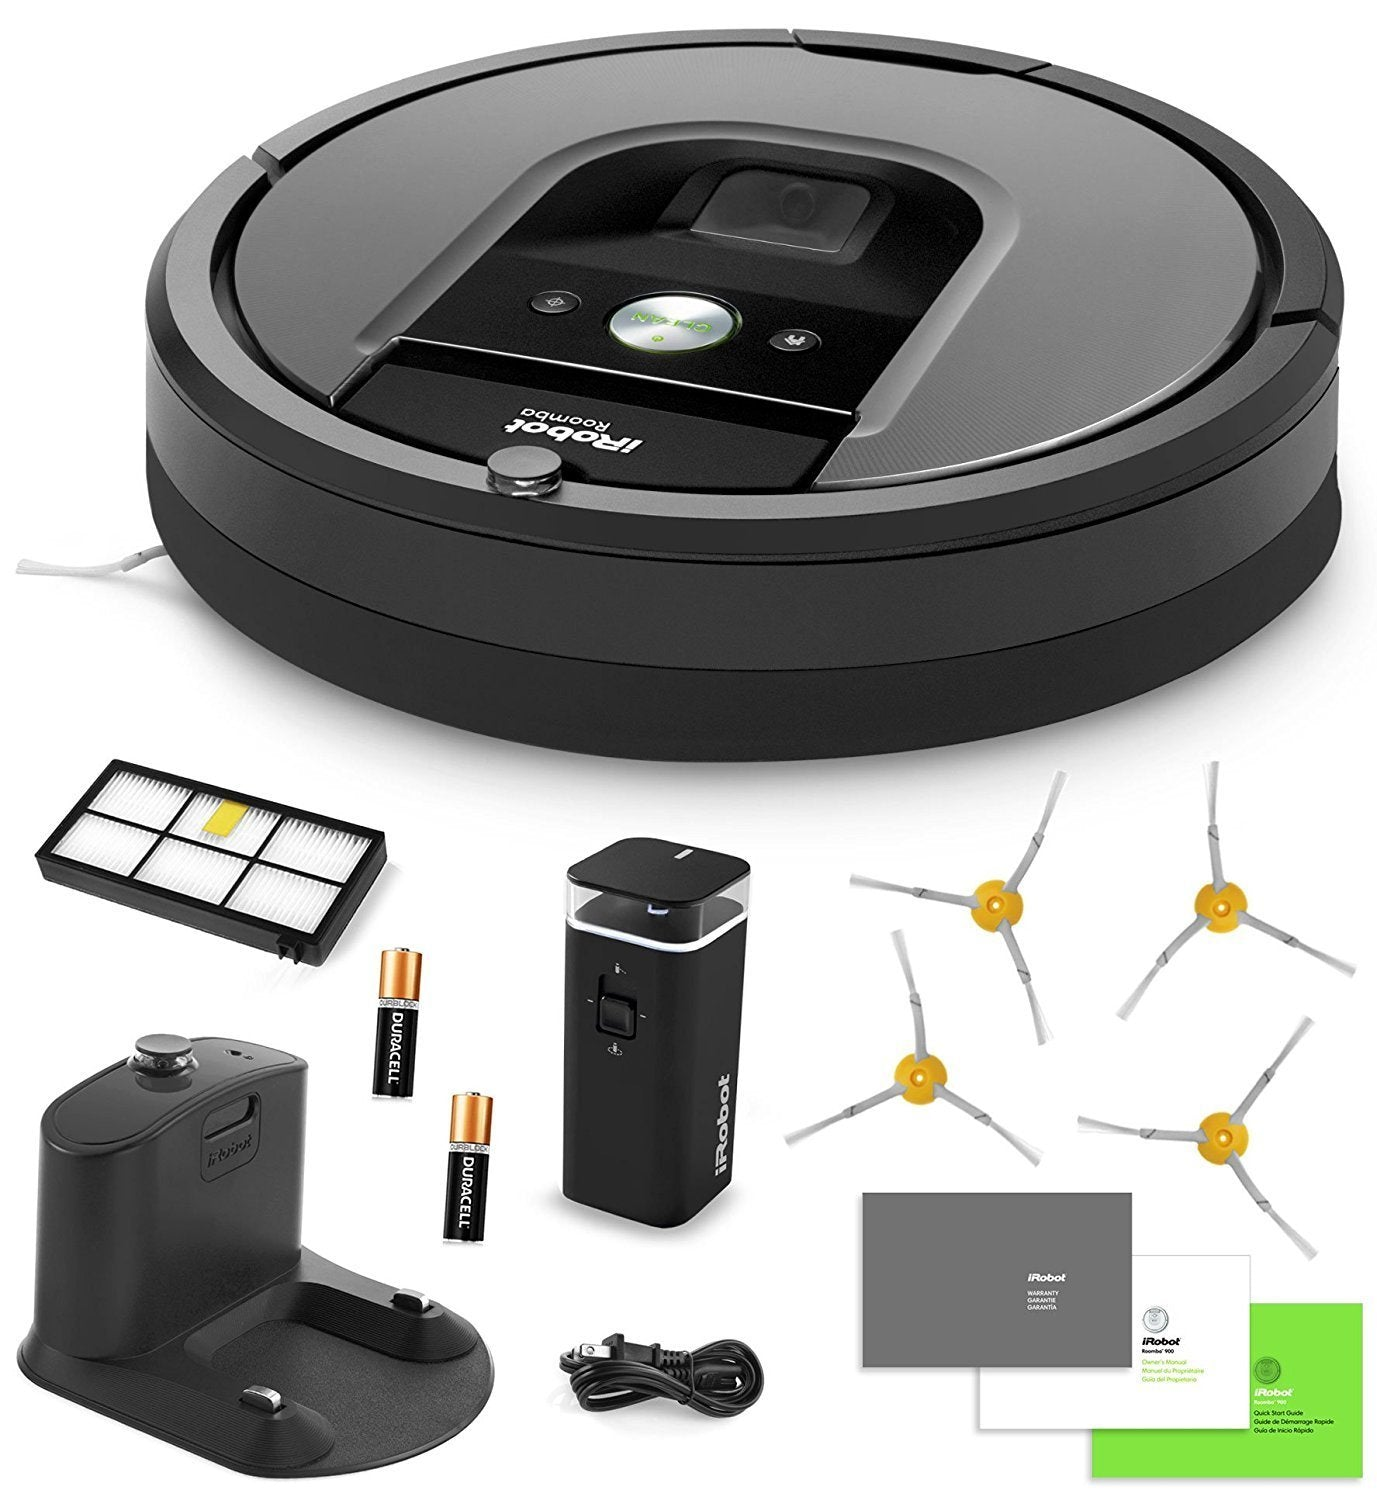 iRobot Roomba 960 Vacuum Cleaning Robot + Dual Mode Virtual Wall Barrier  (With Batteries) + Extra High Efficiency Filter + 4 Extra Sidebrushes + More